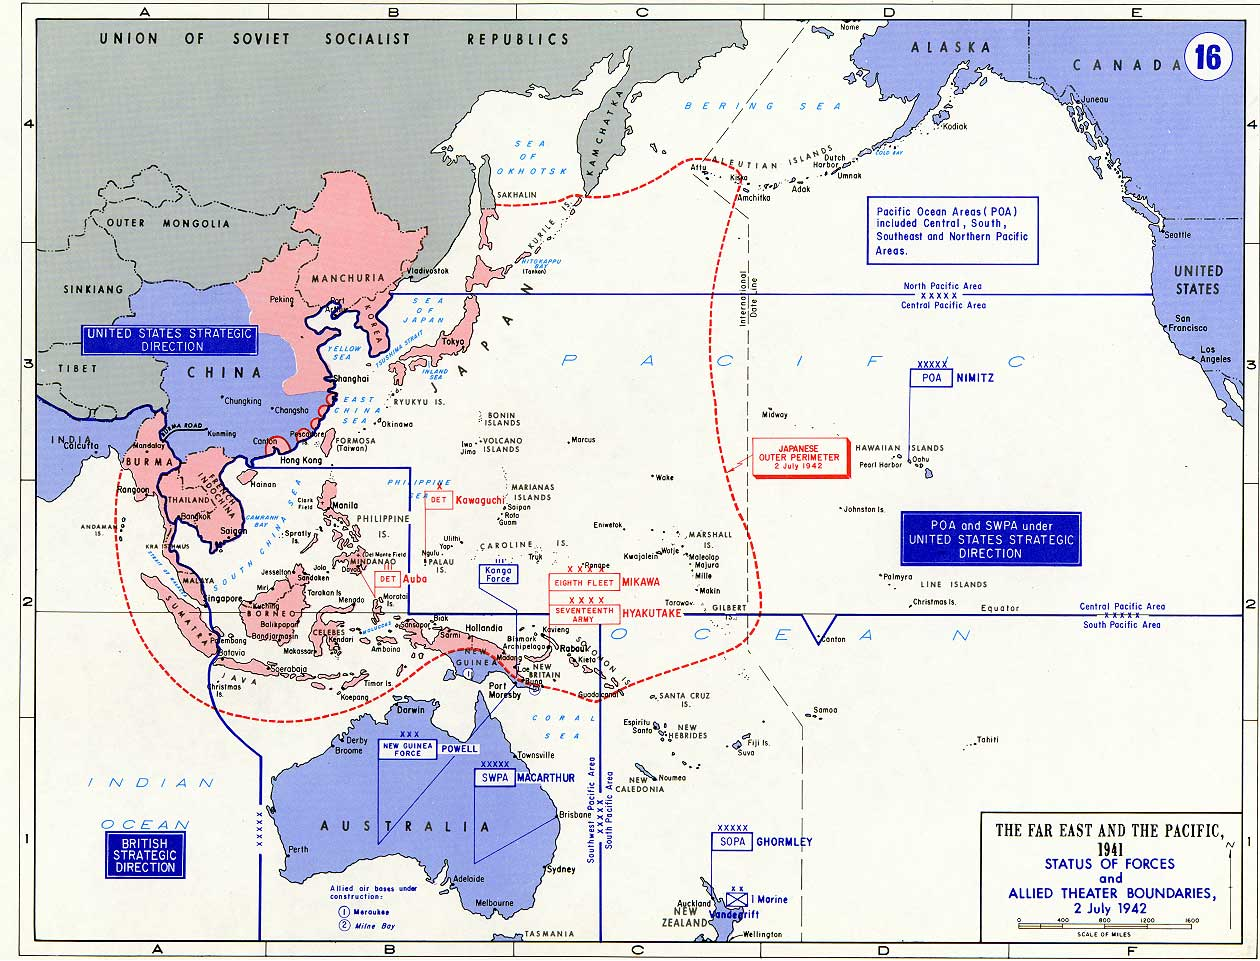 Allied Forces  Pacific Theater July 1942 Boundaries